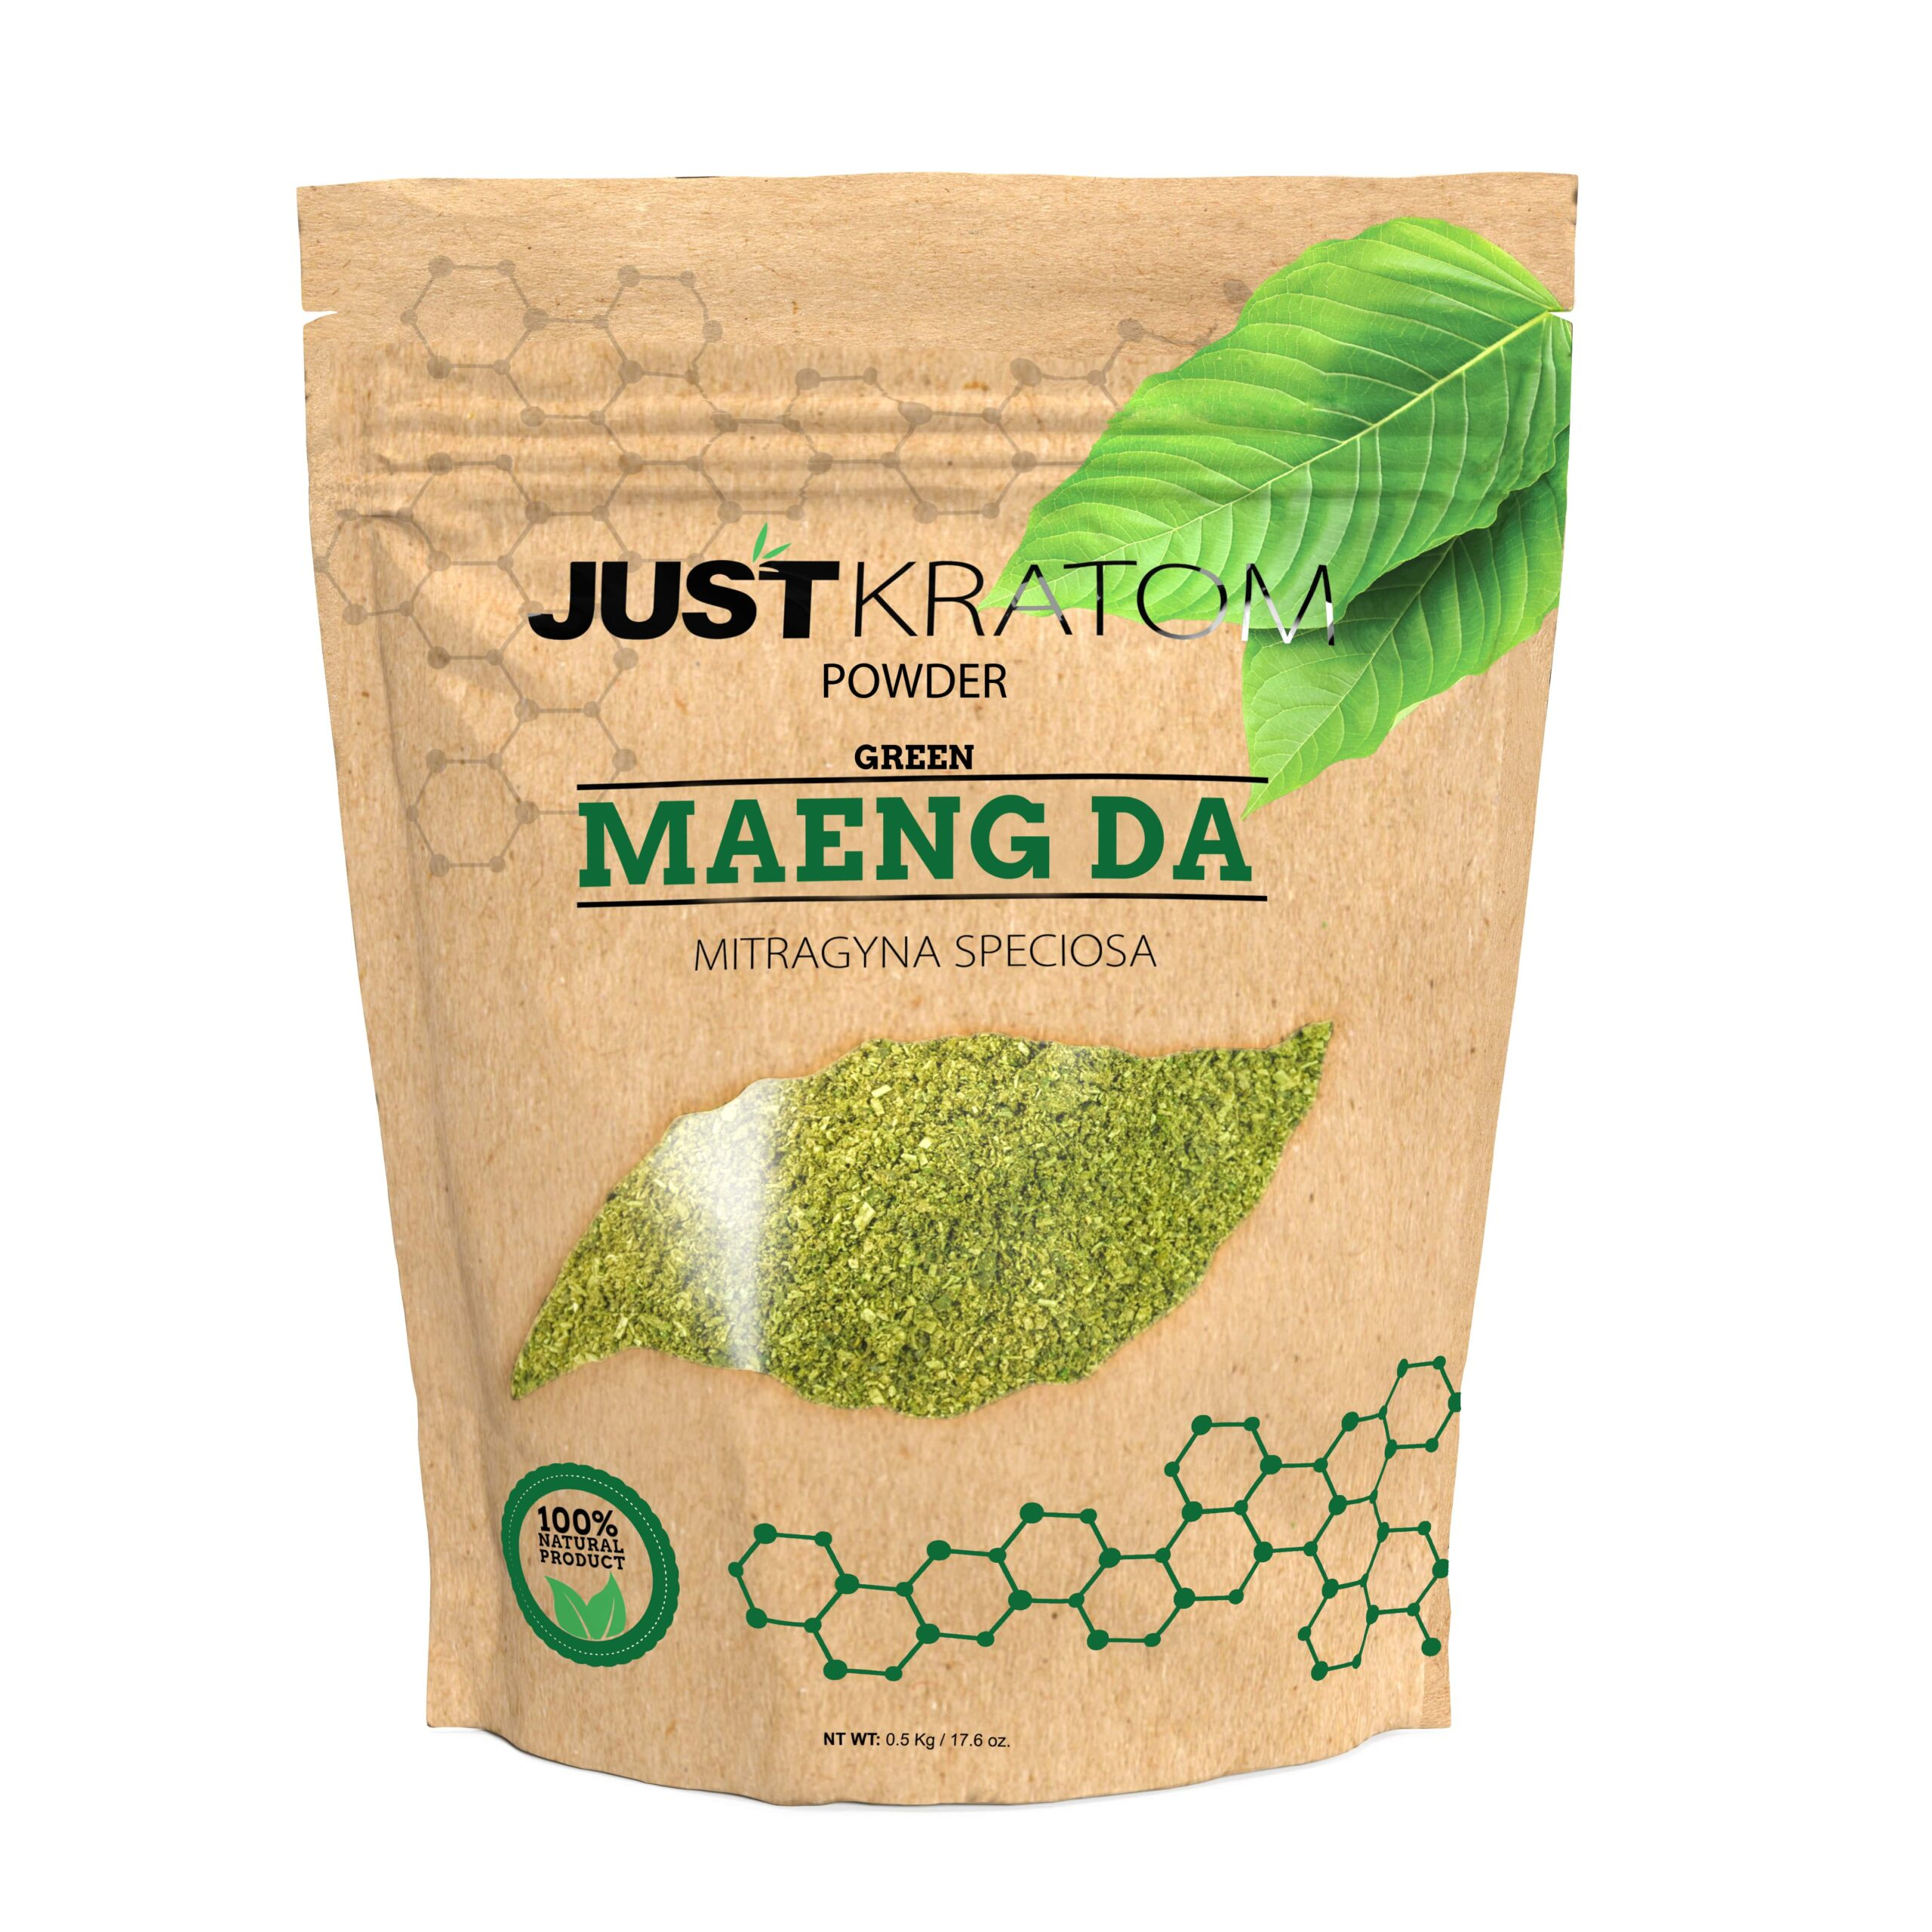 Where To Buy Good Kratom